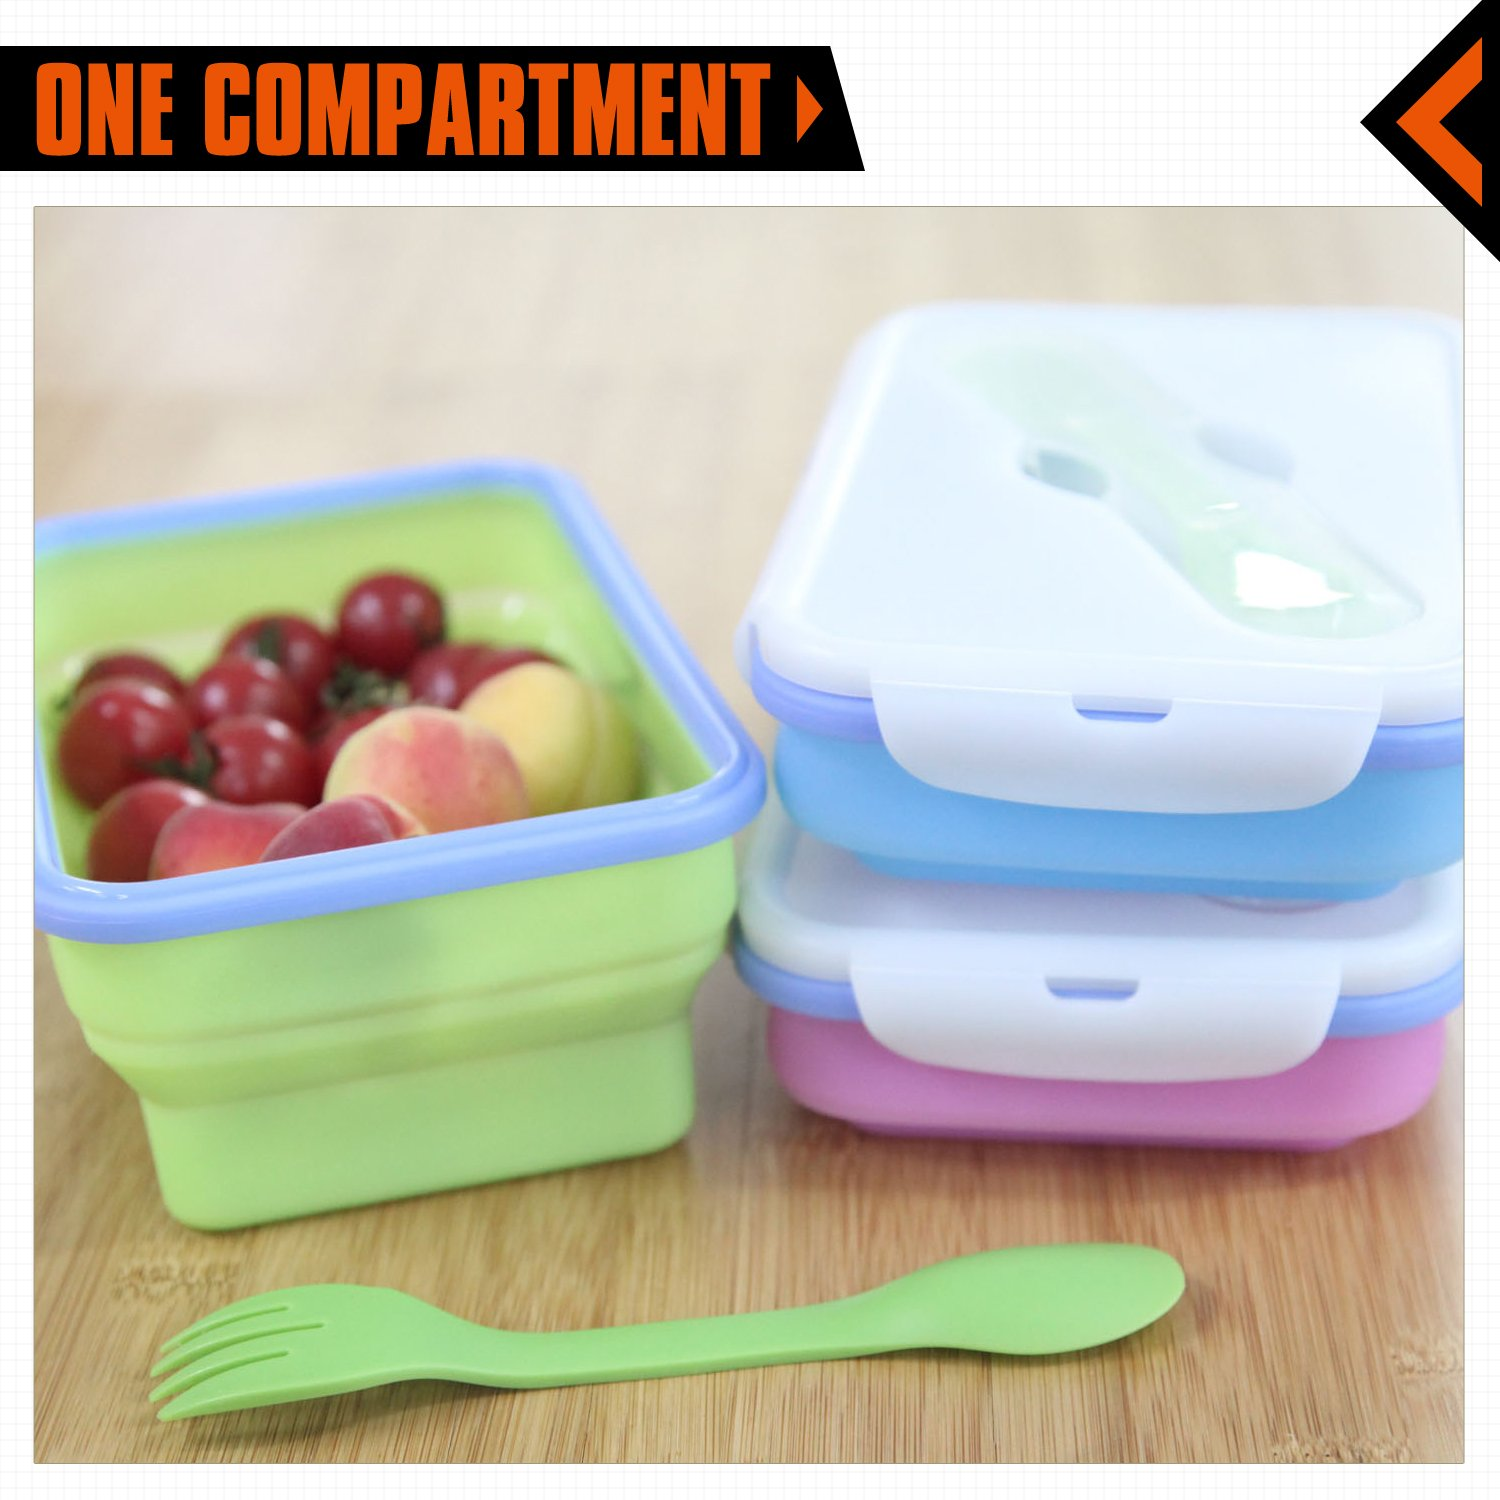 KingCamp Silicone Collapsible BPA Free Microwave Dishwasher and Freezer Safe Camping Food Container